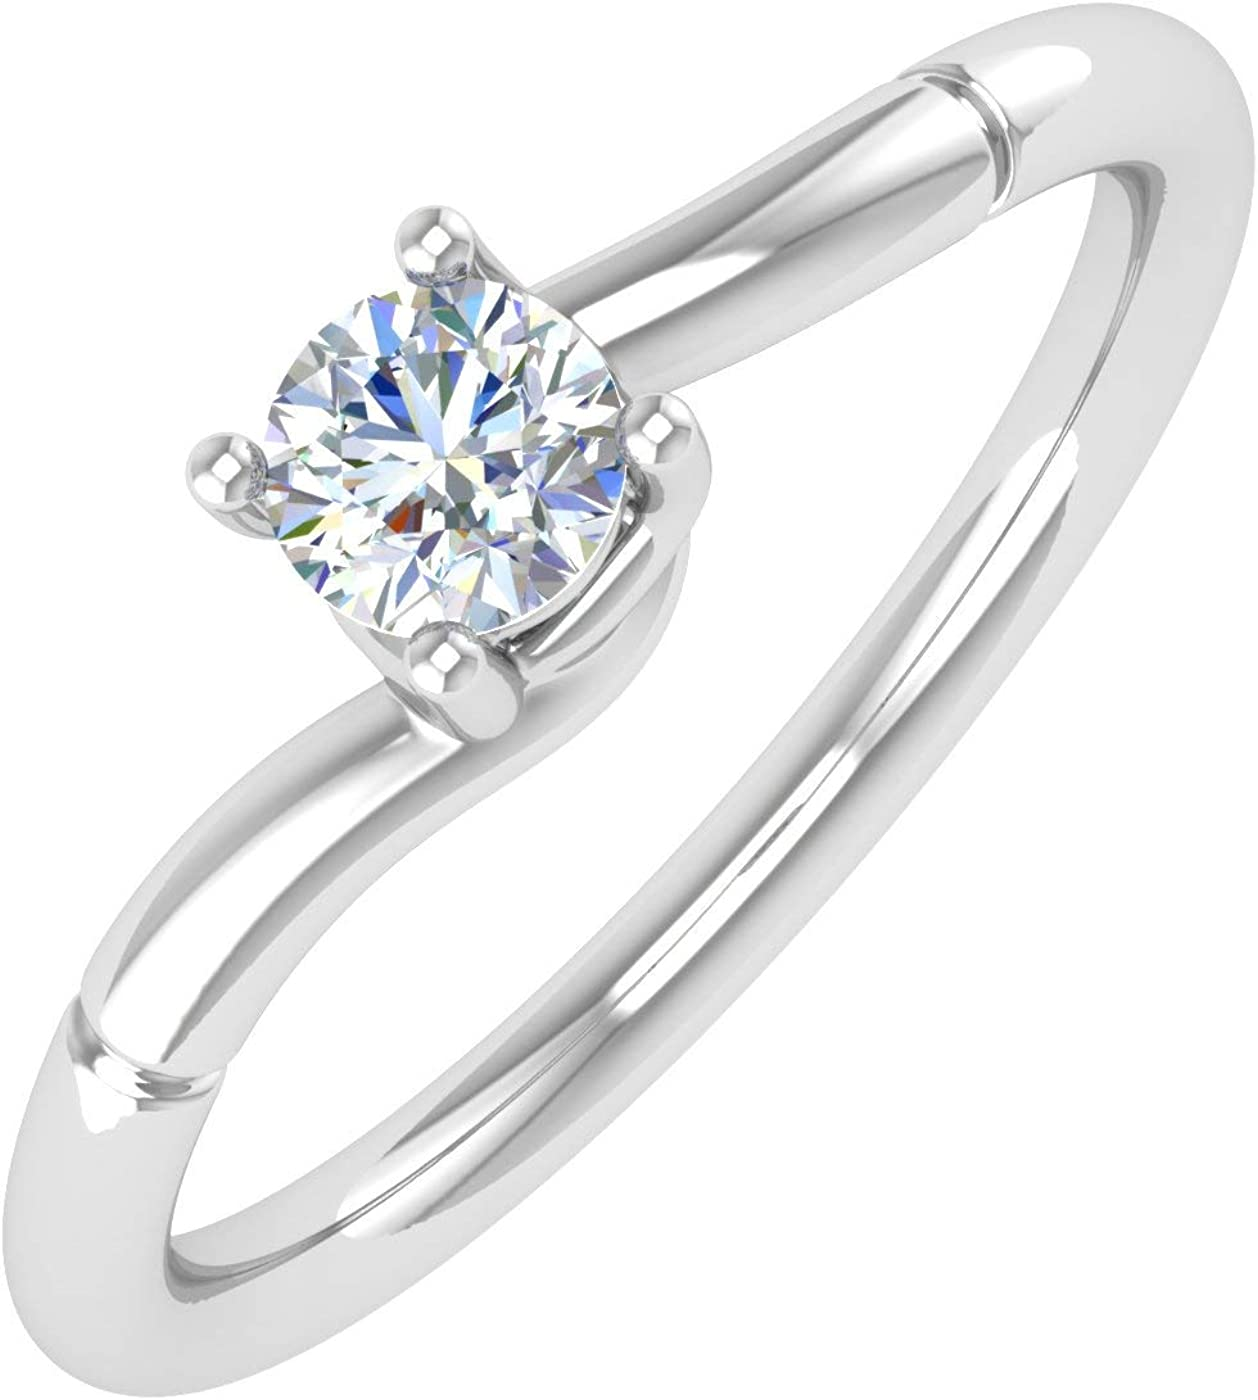 1/4 Carat 4-Prong Set Diamond Solitaire Engagement Ring Band in 10K Gold